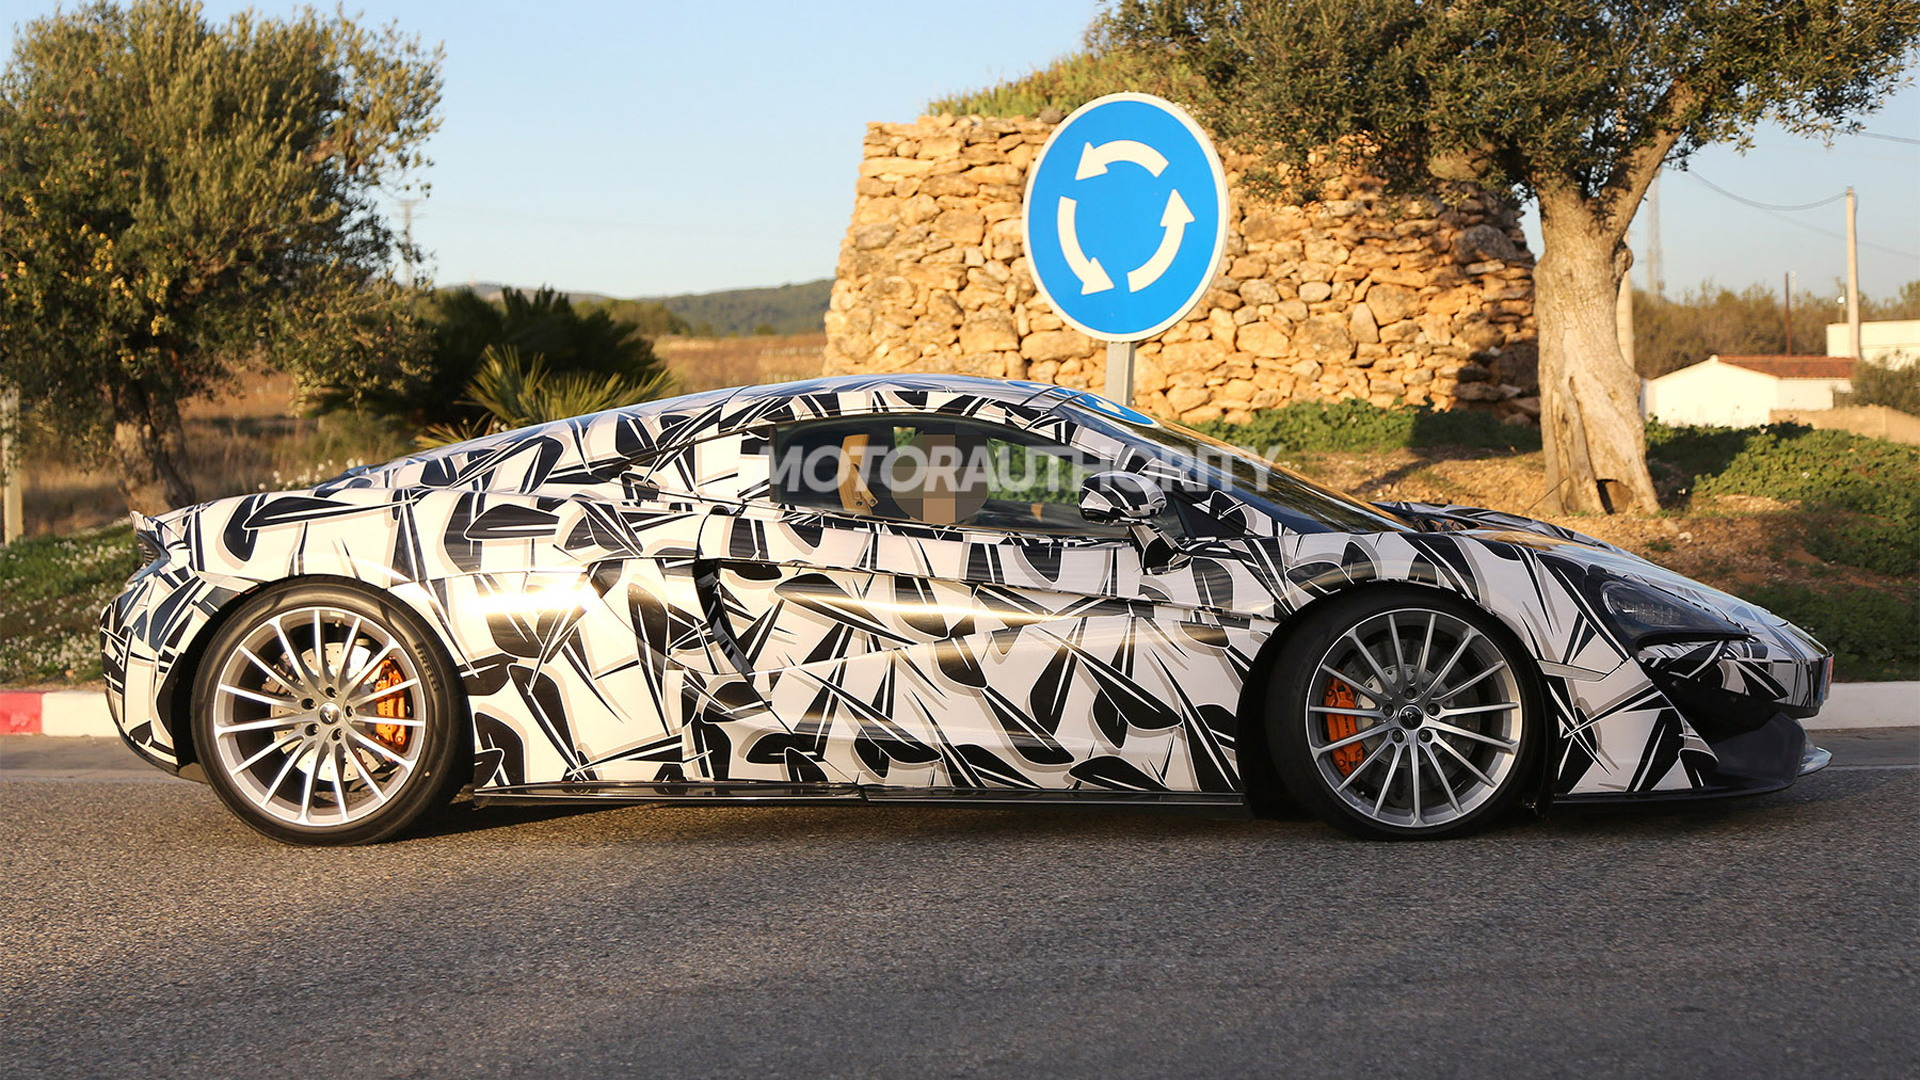 McLaren Sports Series GT spy shots - Image via S. Baldauf/SB-Medien